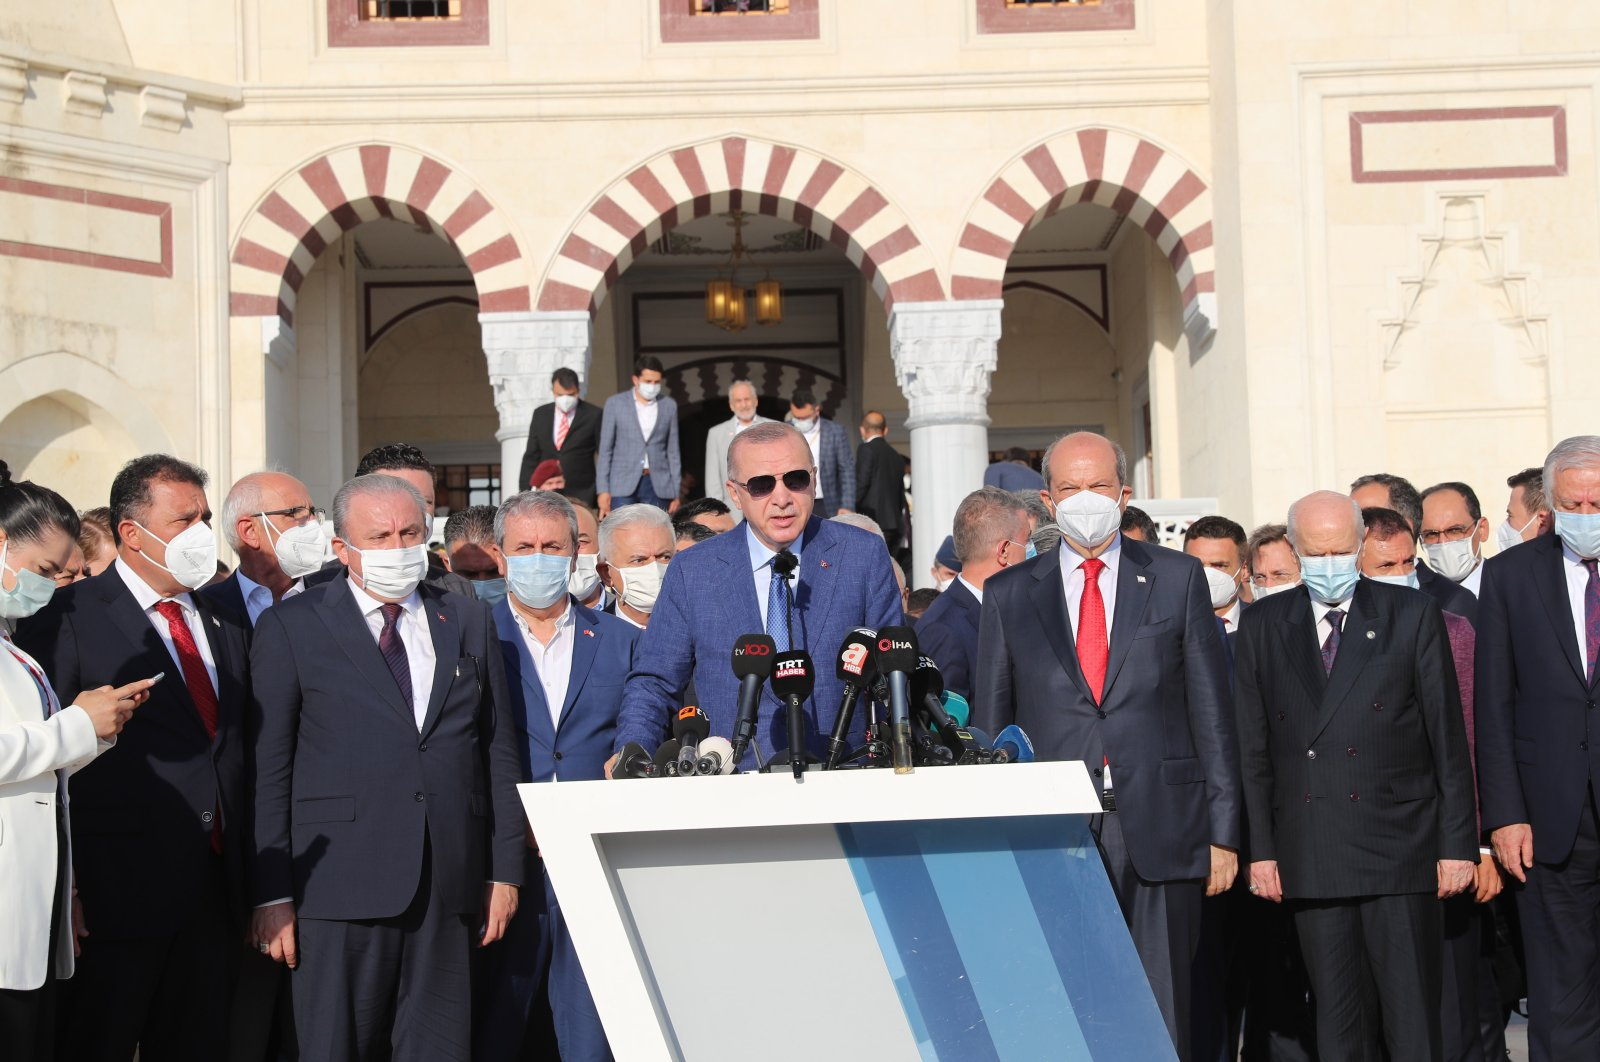 President Recep Tayyip Erdoğan speaks at a press conference after performing bayram prayers at the Hala Sultan Mosque on the first day Eid al-Adha, in Nicosia, Turkish Republic of Northern Cyprus, July 20, 2021. (DHA Photo)